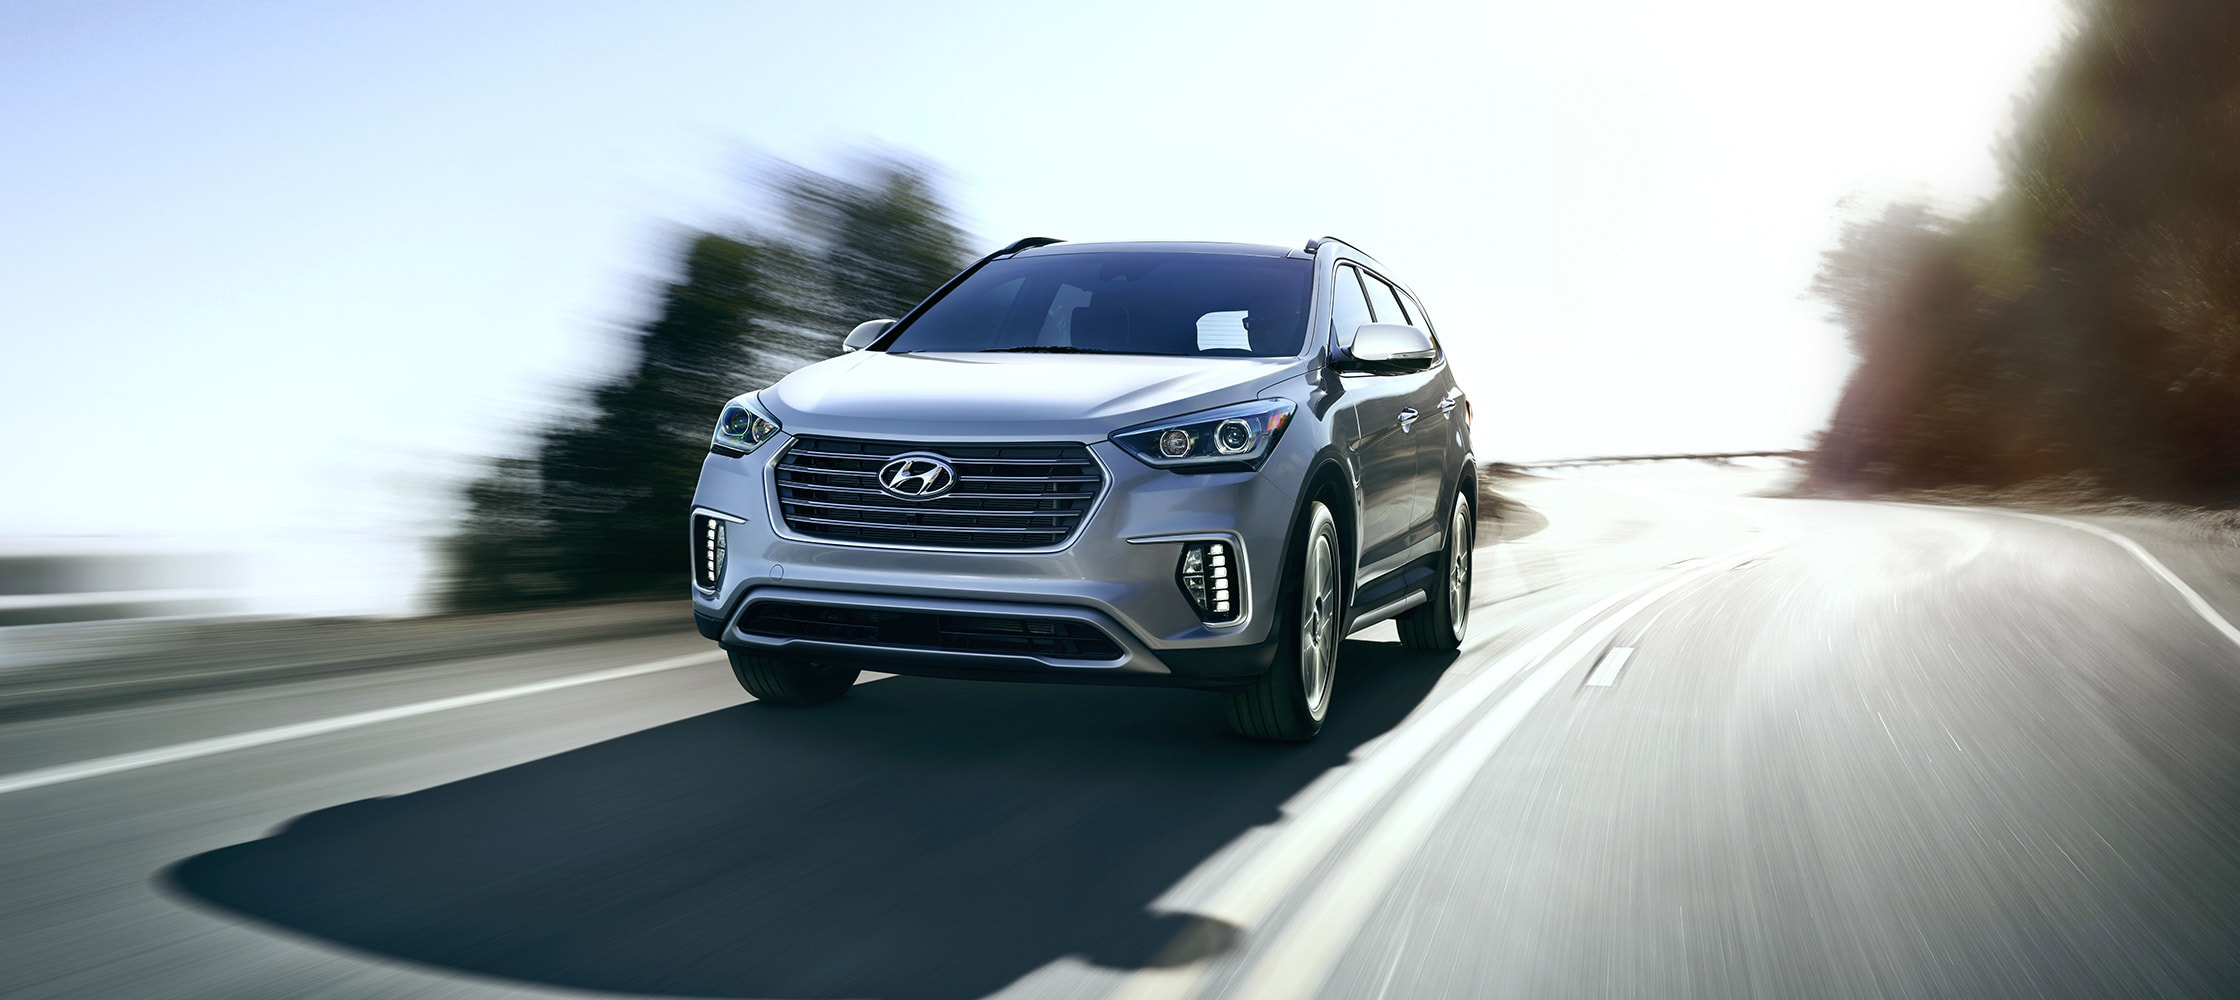 Exterior photo of silver Hyundai Santa Fe XL 2017 SUV sophisticated front grill and sporty presence